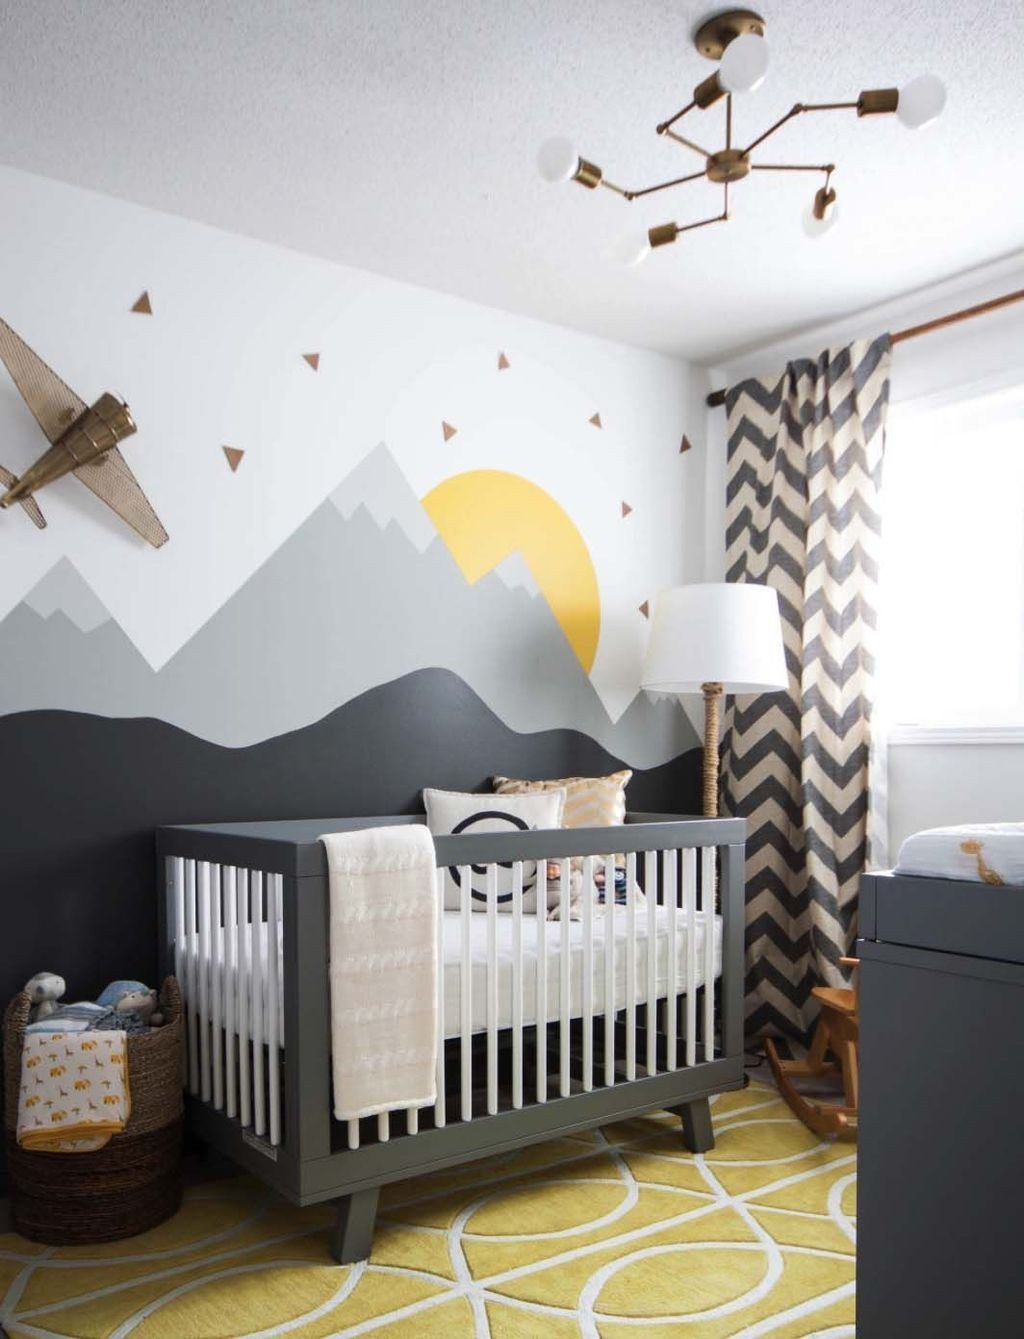 Boy Baby Bedroom Ideas Inspirational 48 Artsy Wall Painting Ideas for Your Home